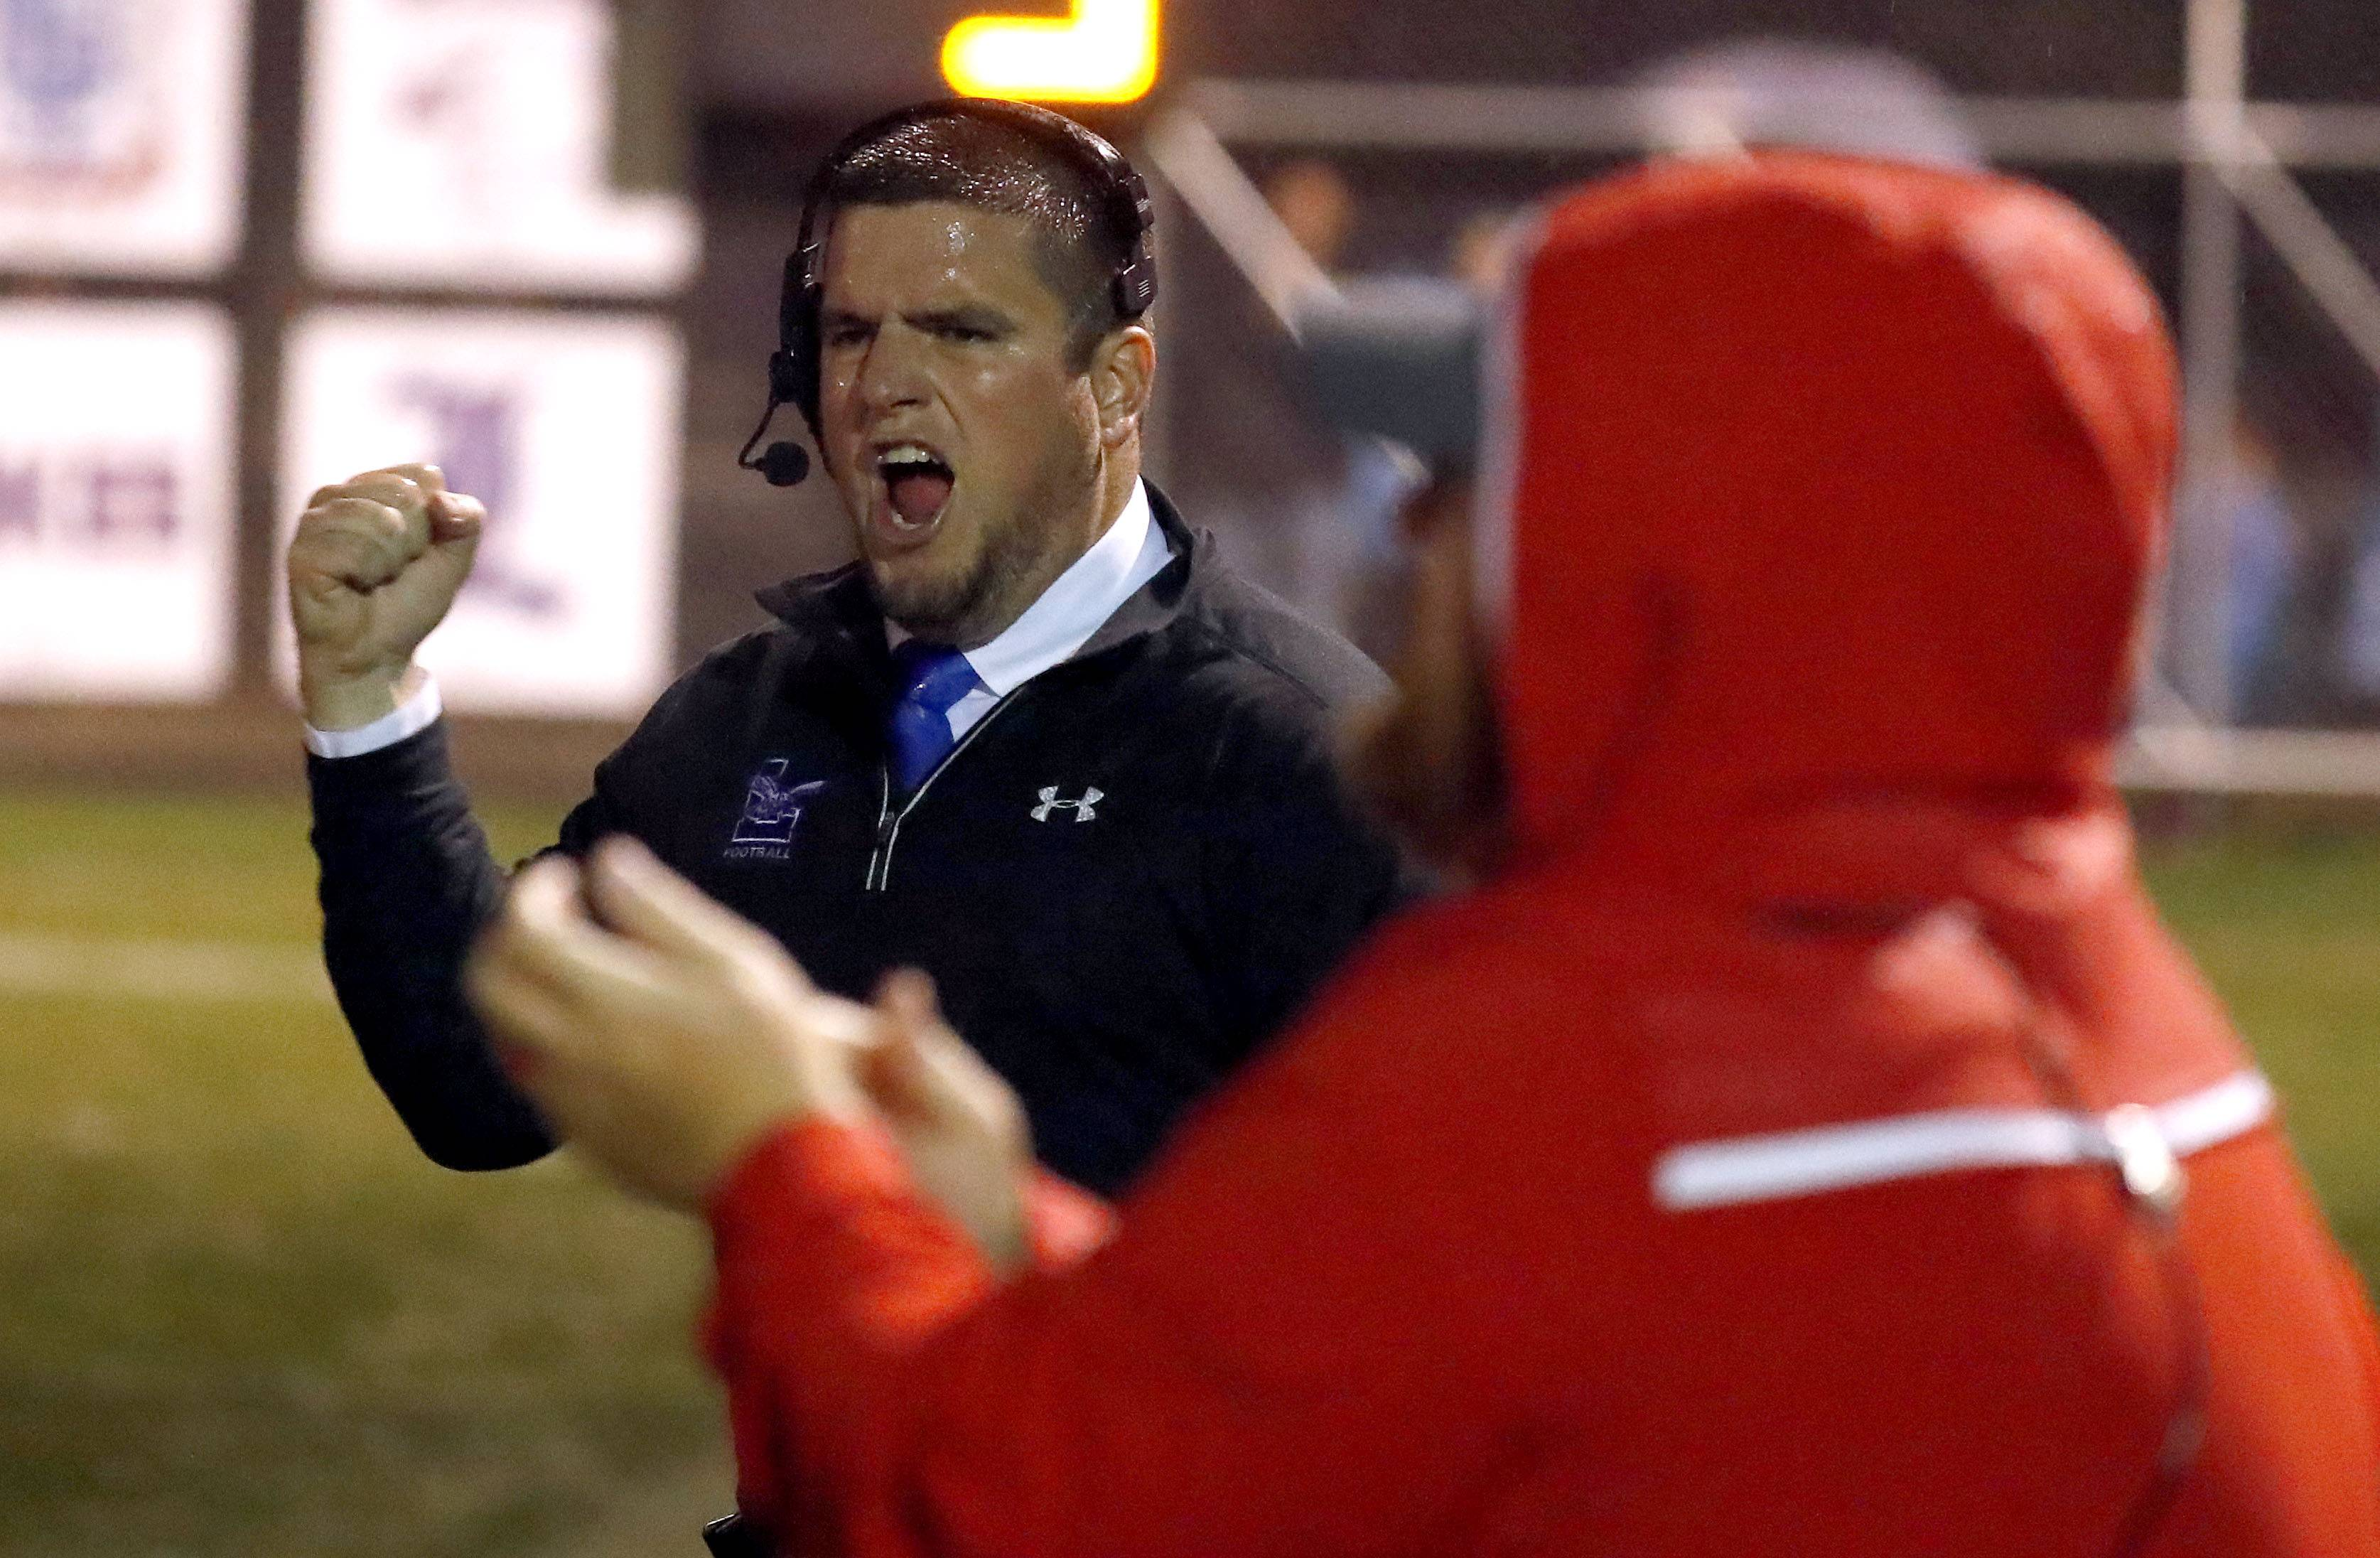 Lakes coach Jordan Eder cheers during the Eagles' matchup against Antioch on Friday night in Lake Villa.